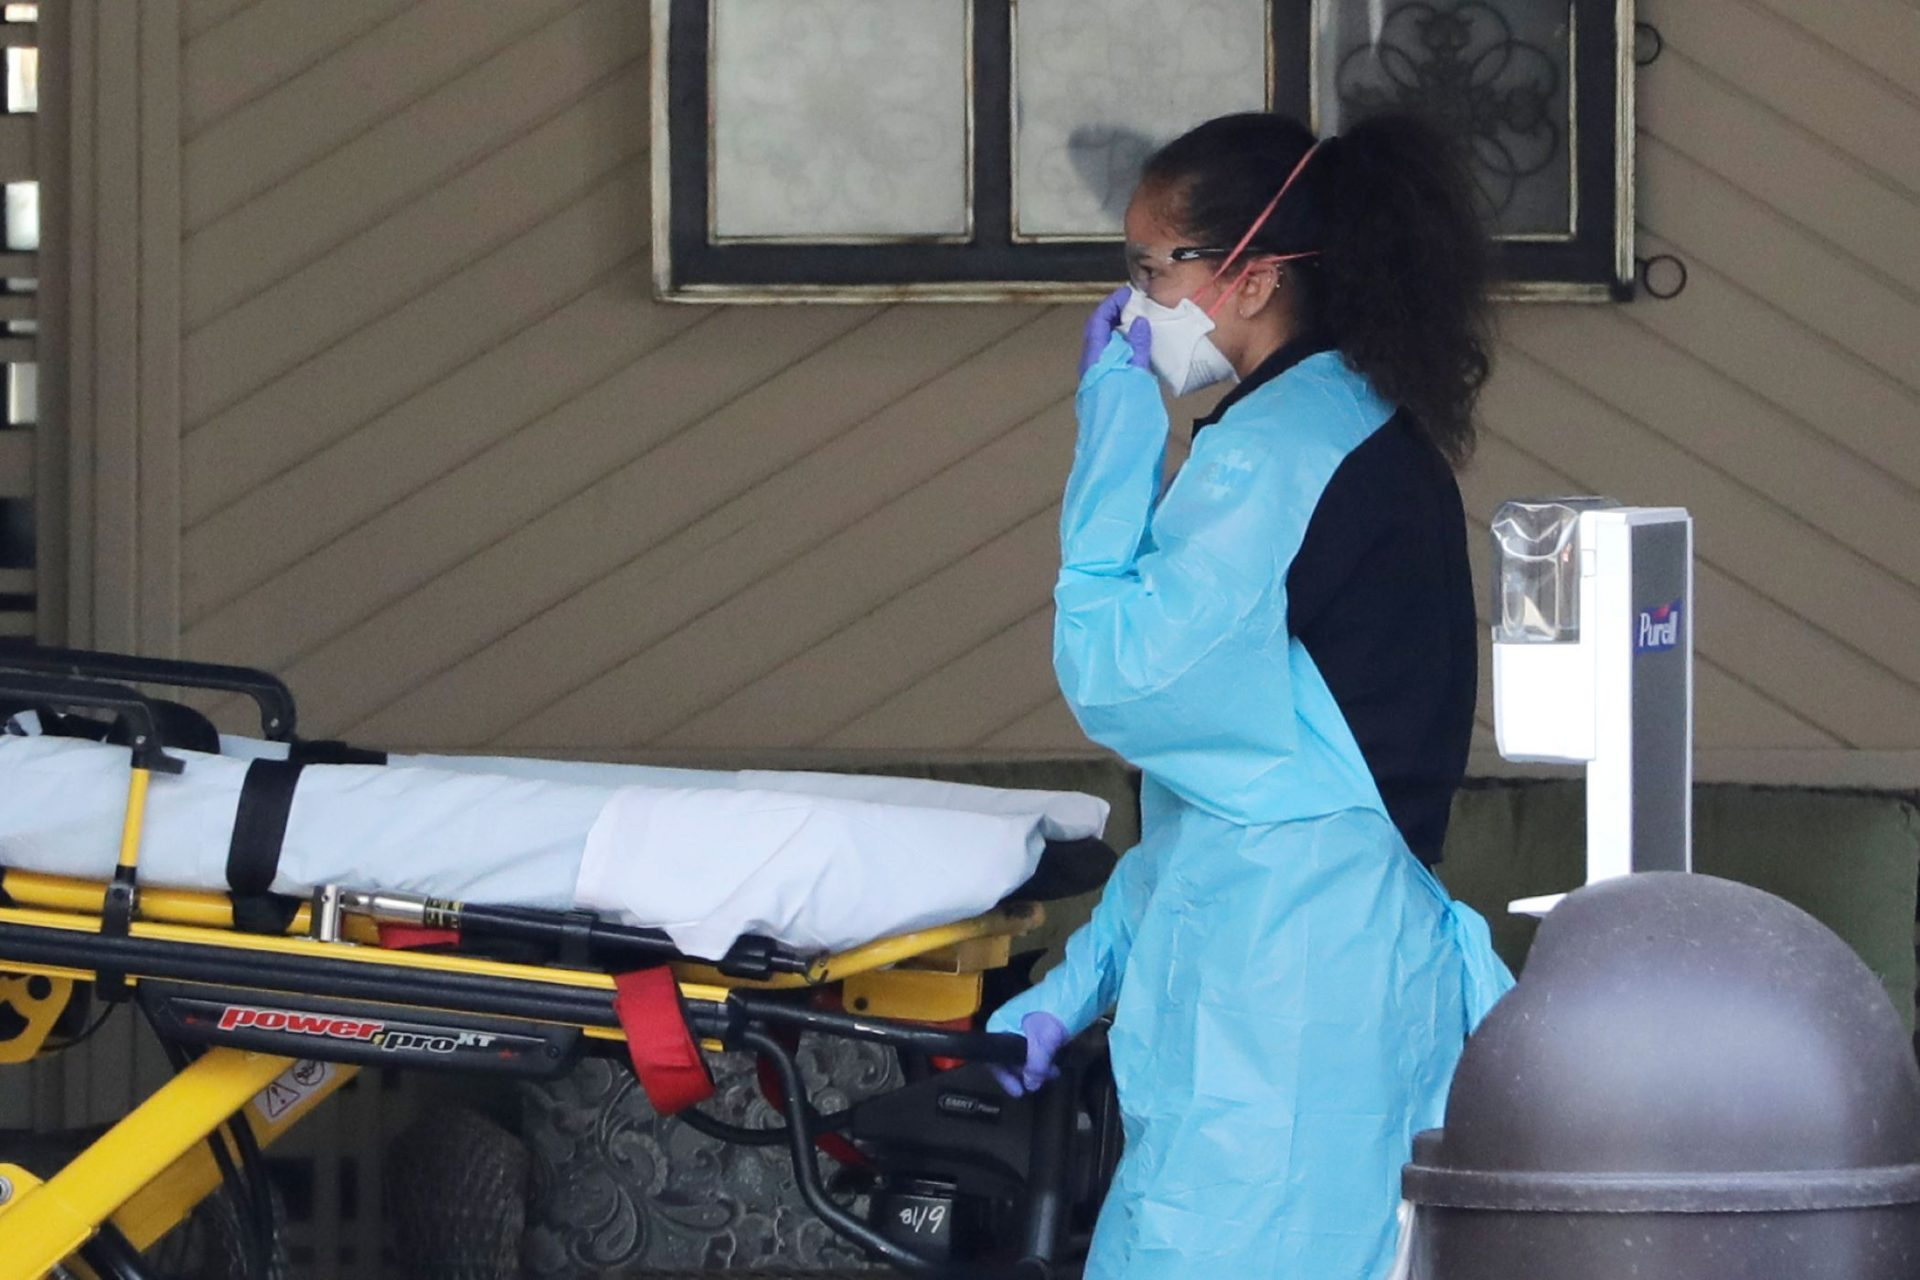 An ambulance worker adjusts her protective mask as she wheels a stretcher into a nursing facility where more than 50 people are sick and being tested for the COVID-19 virus, Saturday, Feb. 29, 2020, in Kirkland, Wash. Health officials reported two cases of COVID-19 virus connected to the Life Care Center of Kirkland. One is a Life Care worker, a woman in her 40s who is in satisfactory condition at a hospital, and the other is a woman in her 70s and a resident at Life Care who is hospitalized in serious condition. Neither have traveled out of the country.